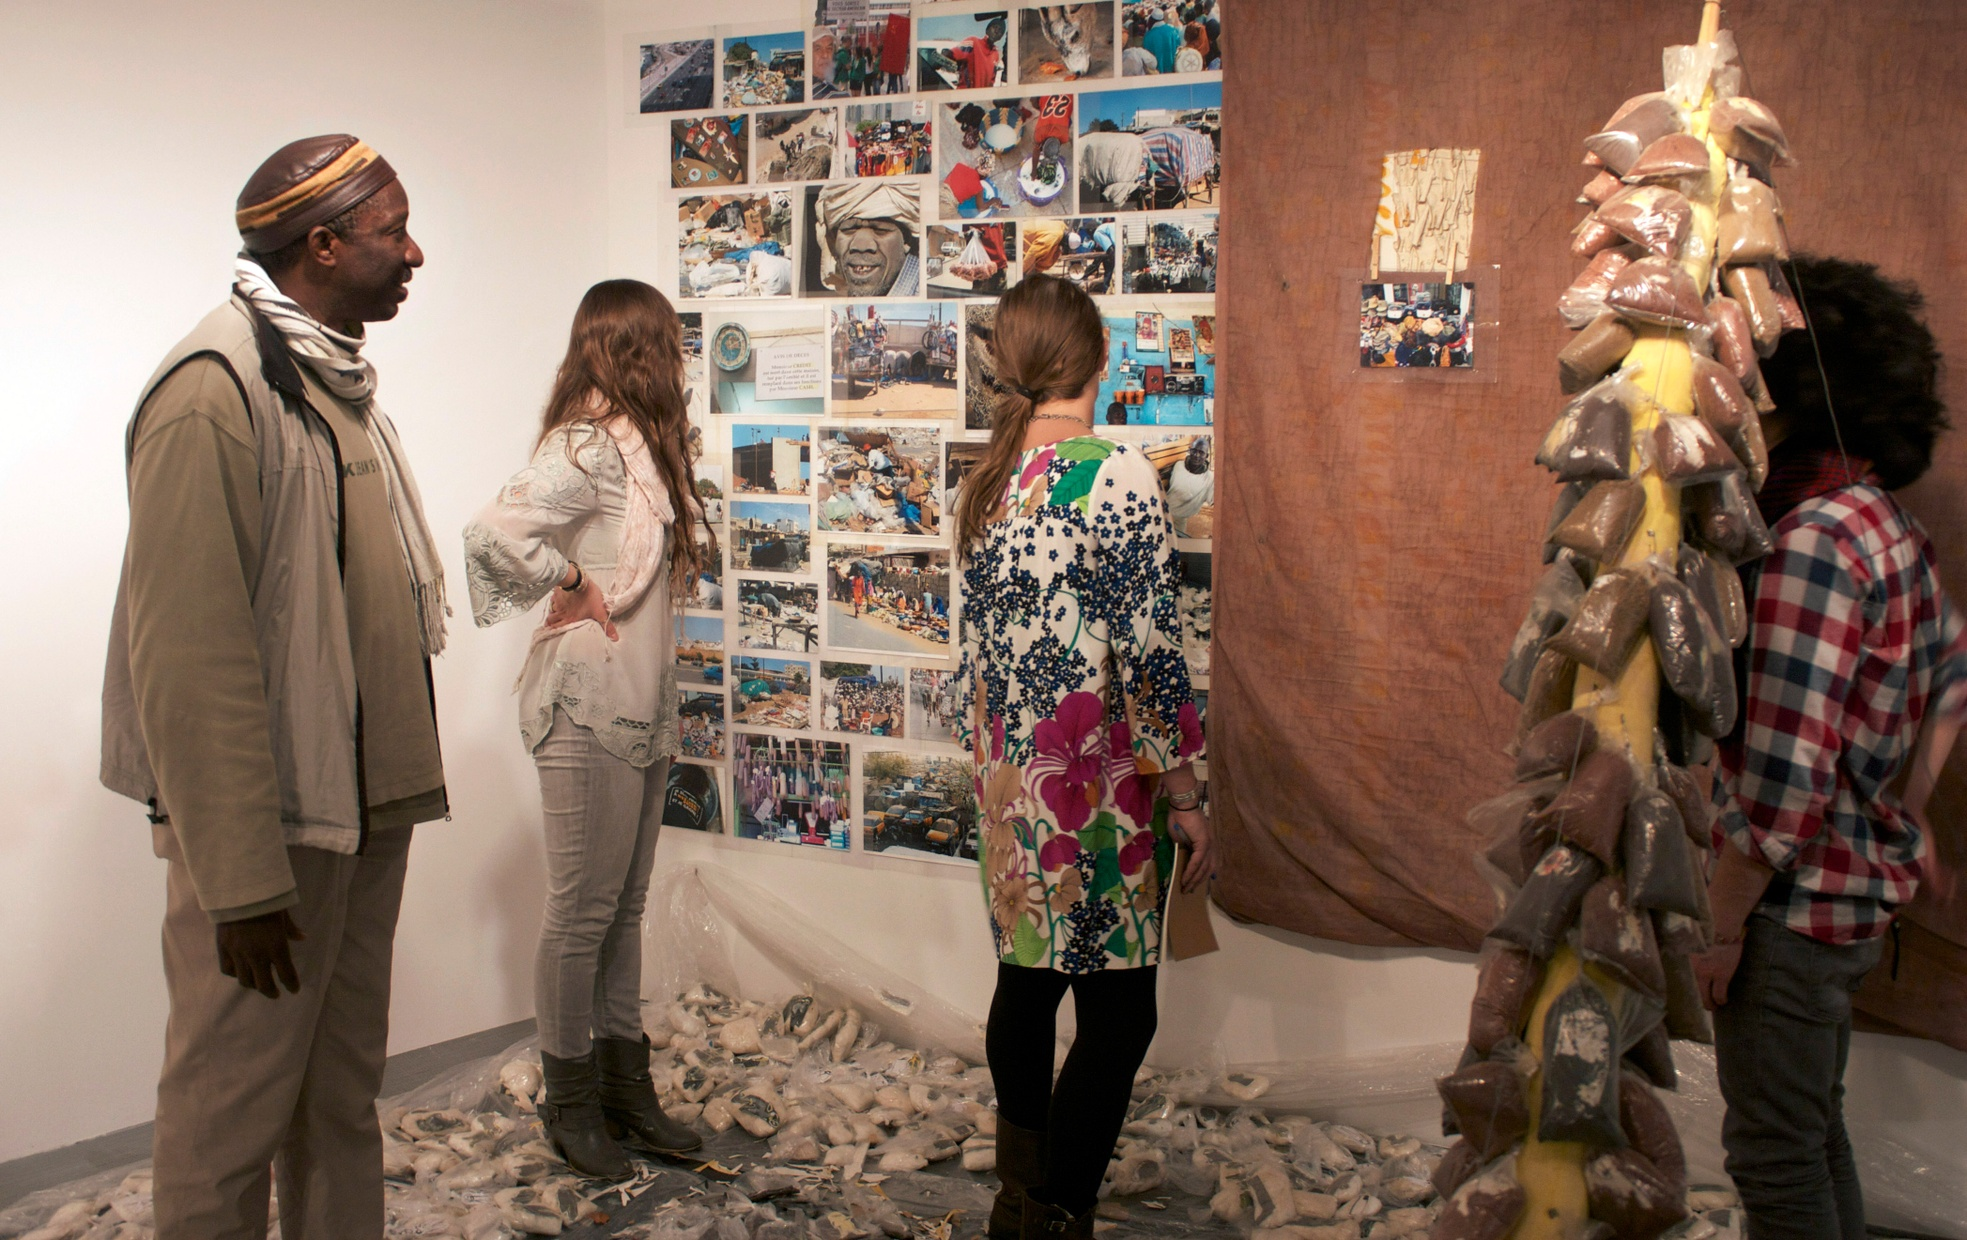 Four people stand on a plastic- and rubbish-lined floor looking at a variety of photographs next to a sculpture made with wood and bags of dirt.